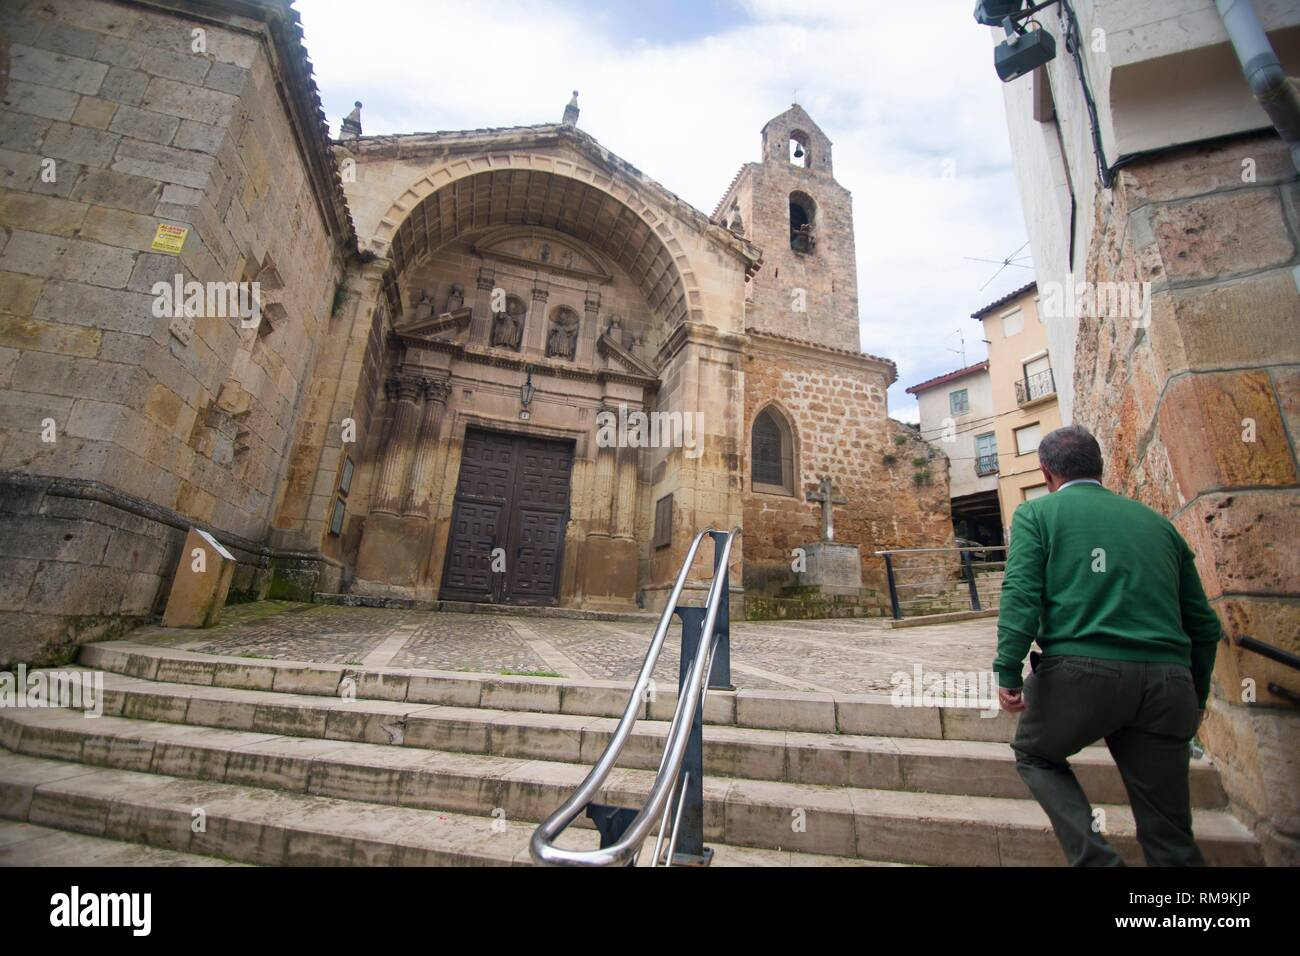 Poza de la Sal is an ancient village in Burgos province, Castile and Leon, Spain. St Cosme and Damian church. - Stock Image